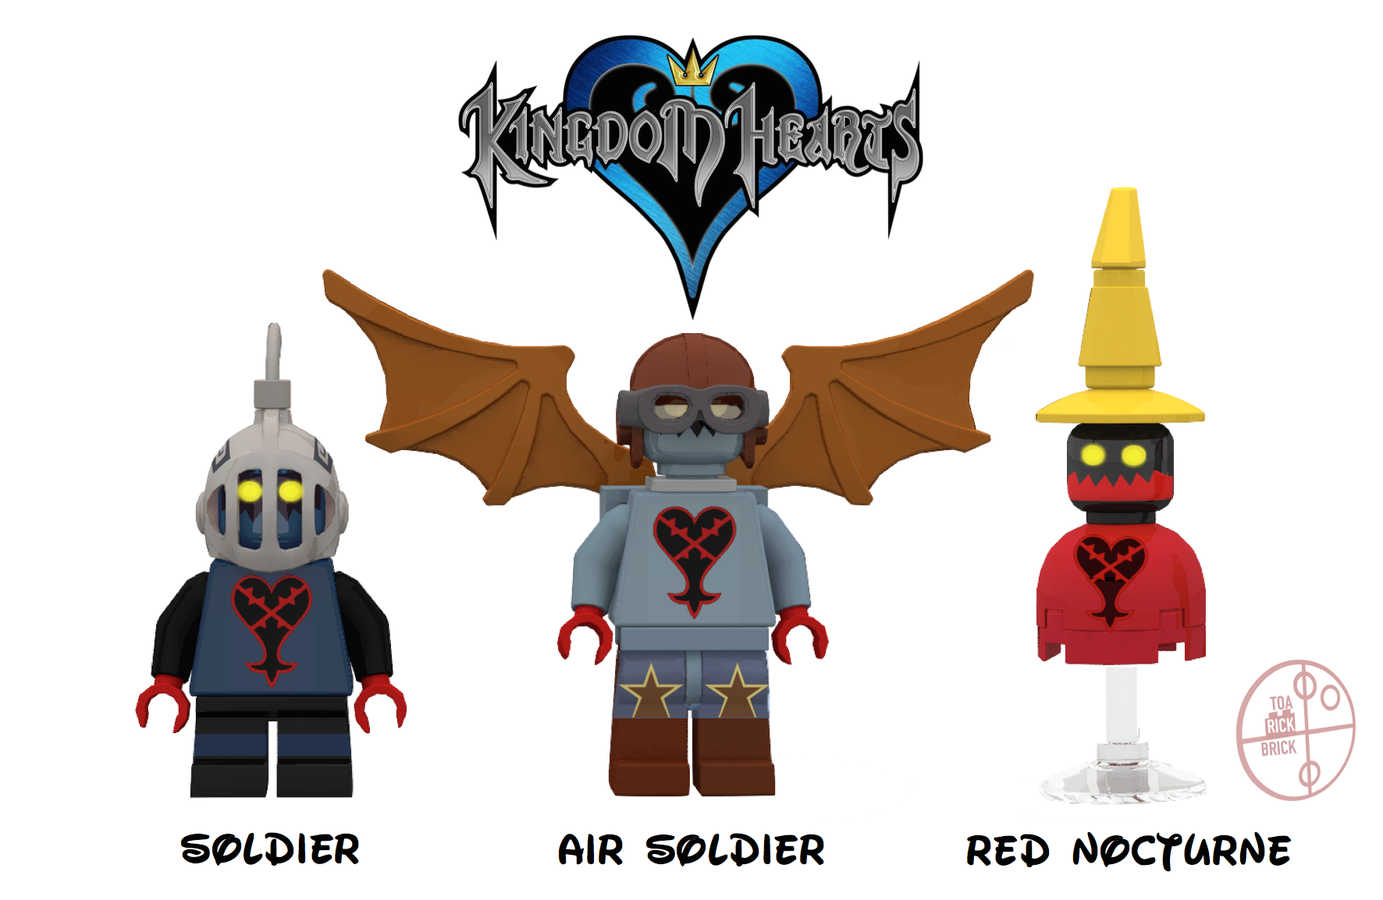 lego ideas product ideas kingdom hearts guard armor encounter